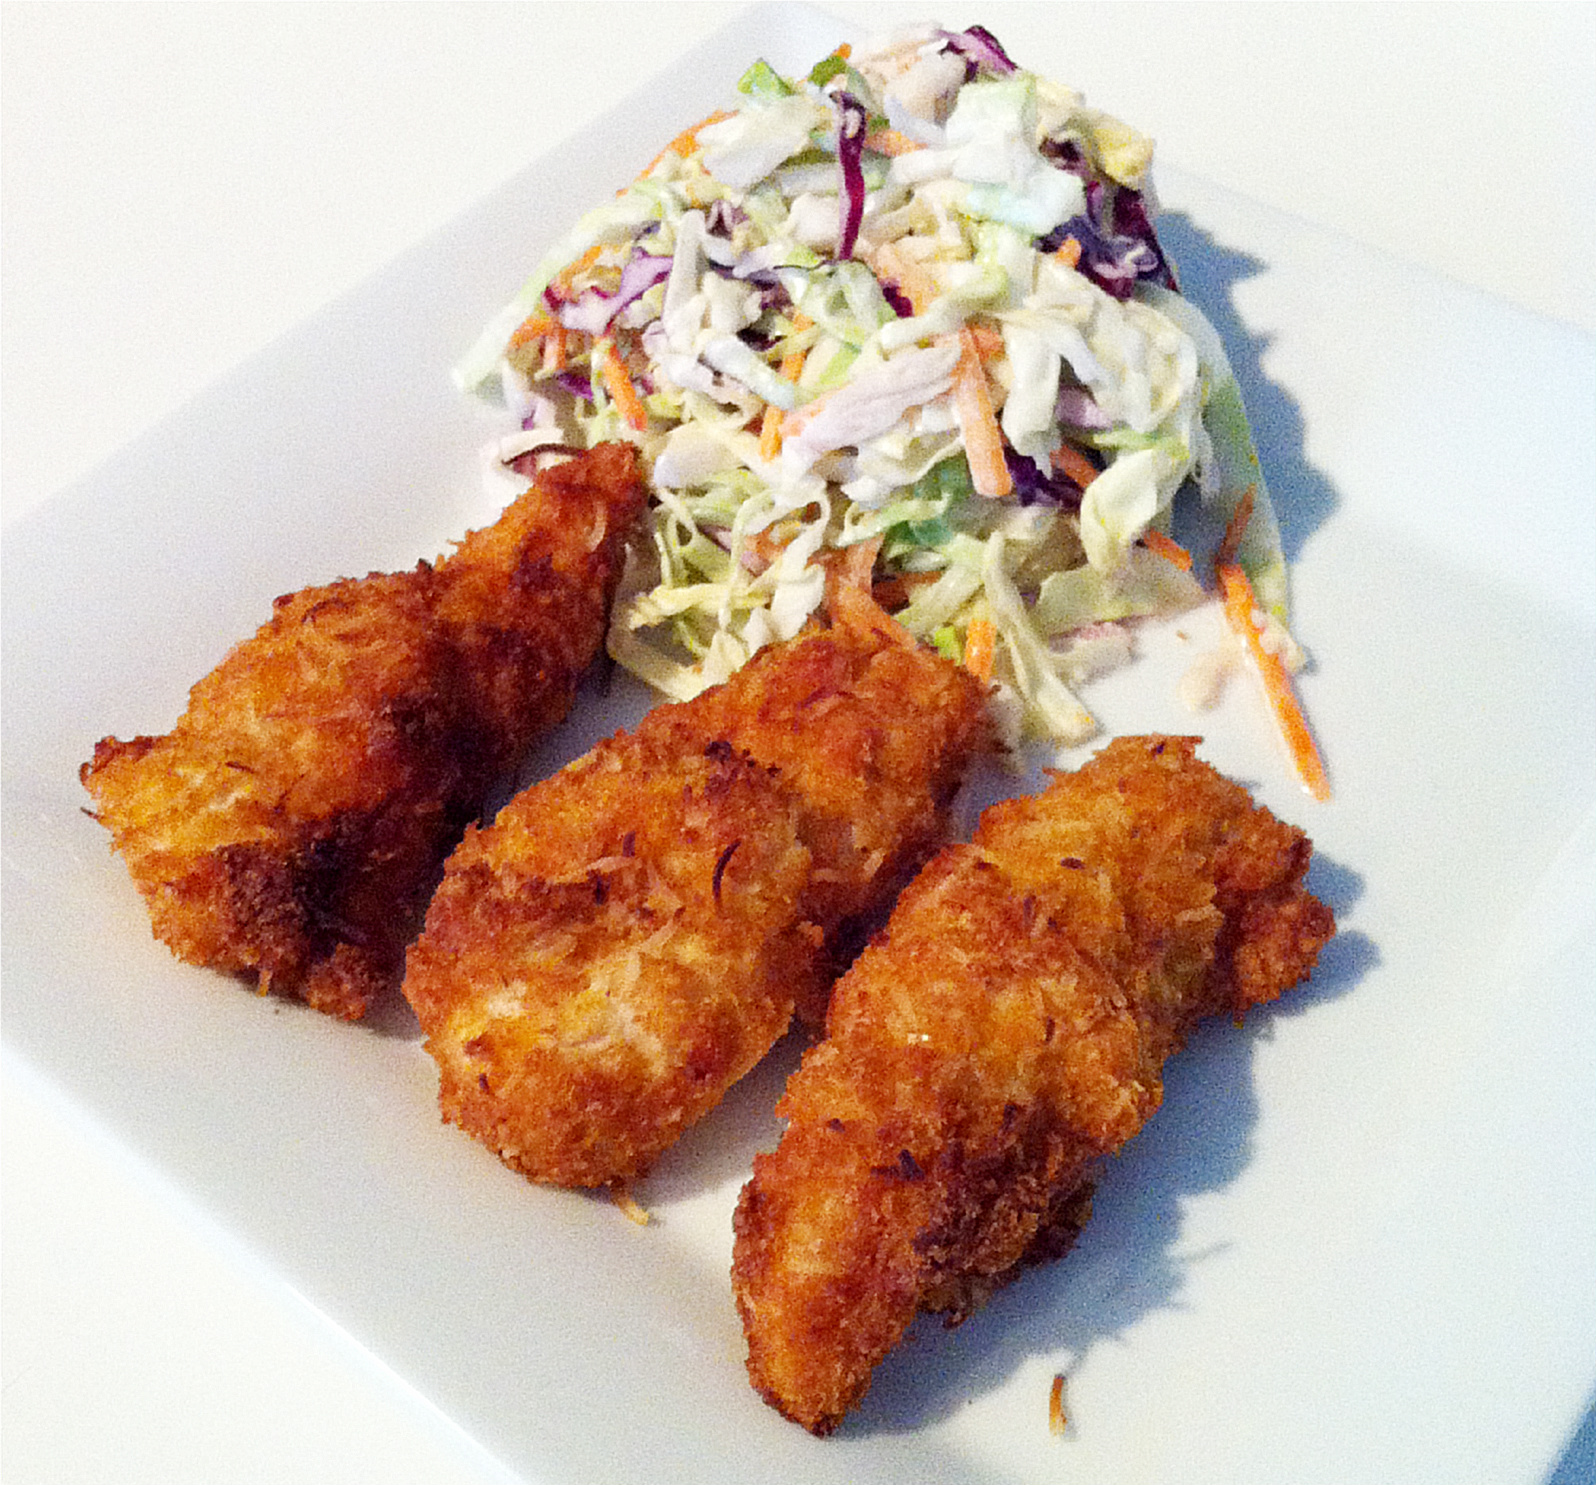 KL Made It: Coconut Chicken Tenders